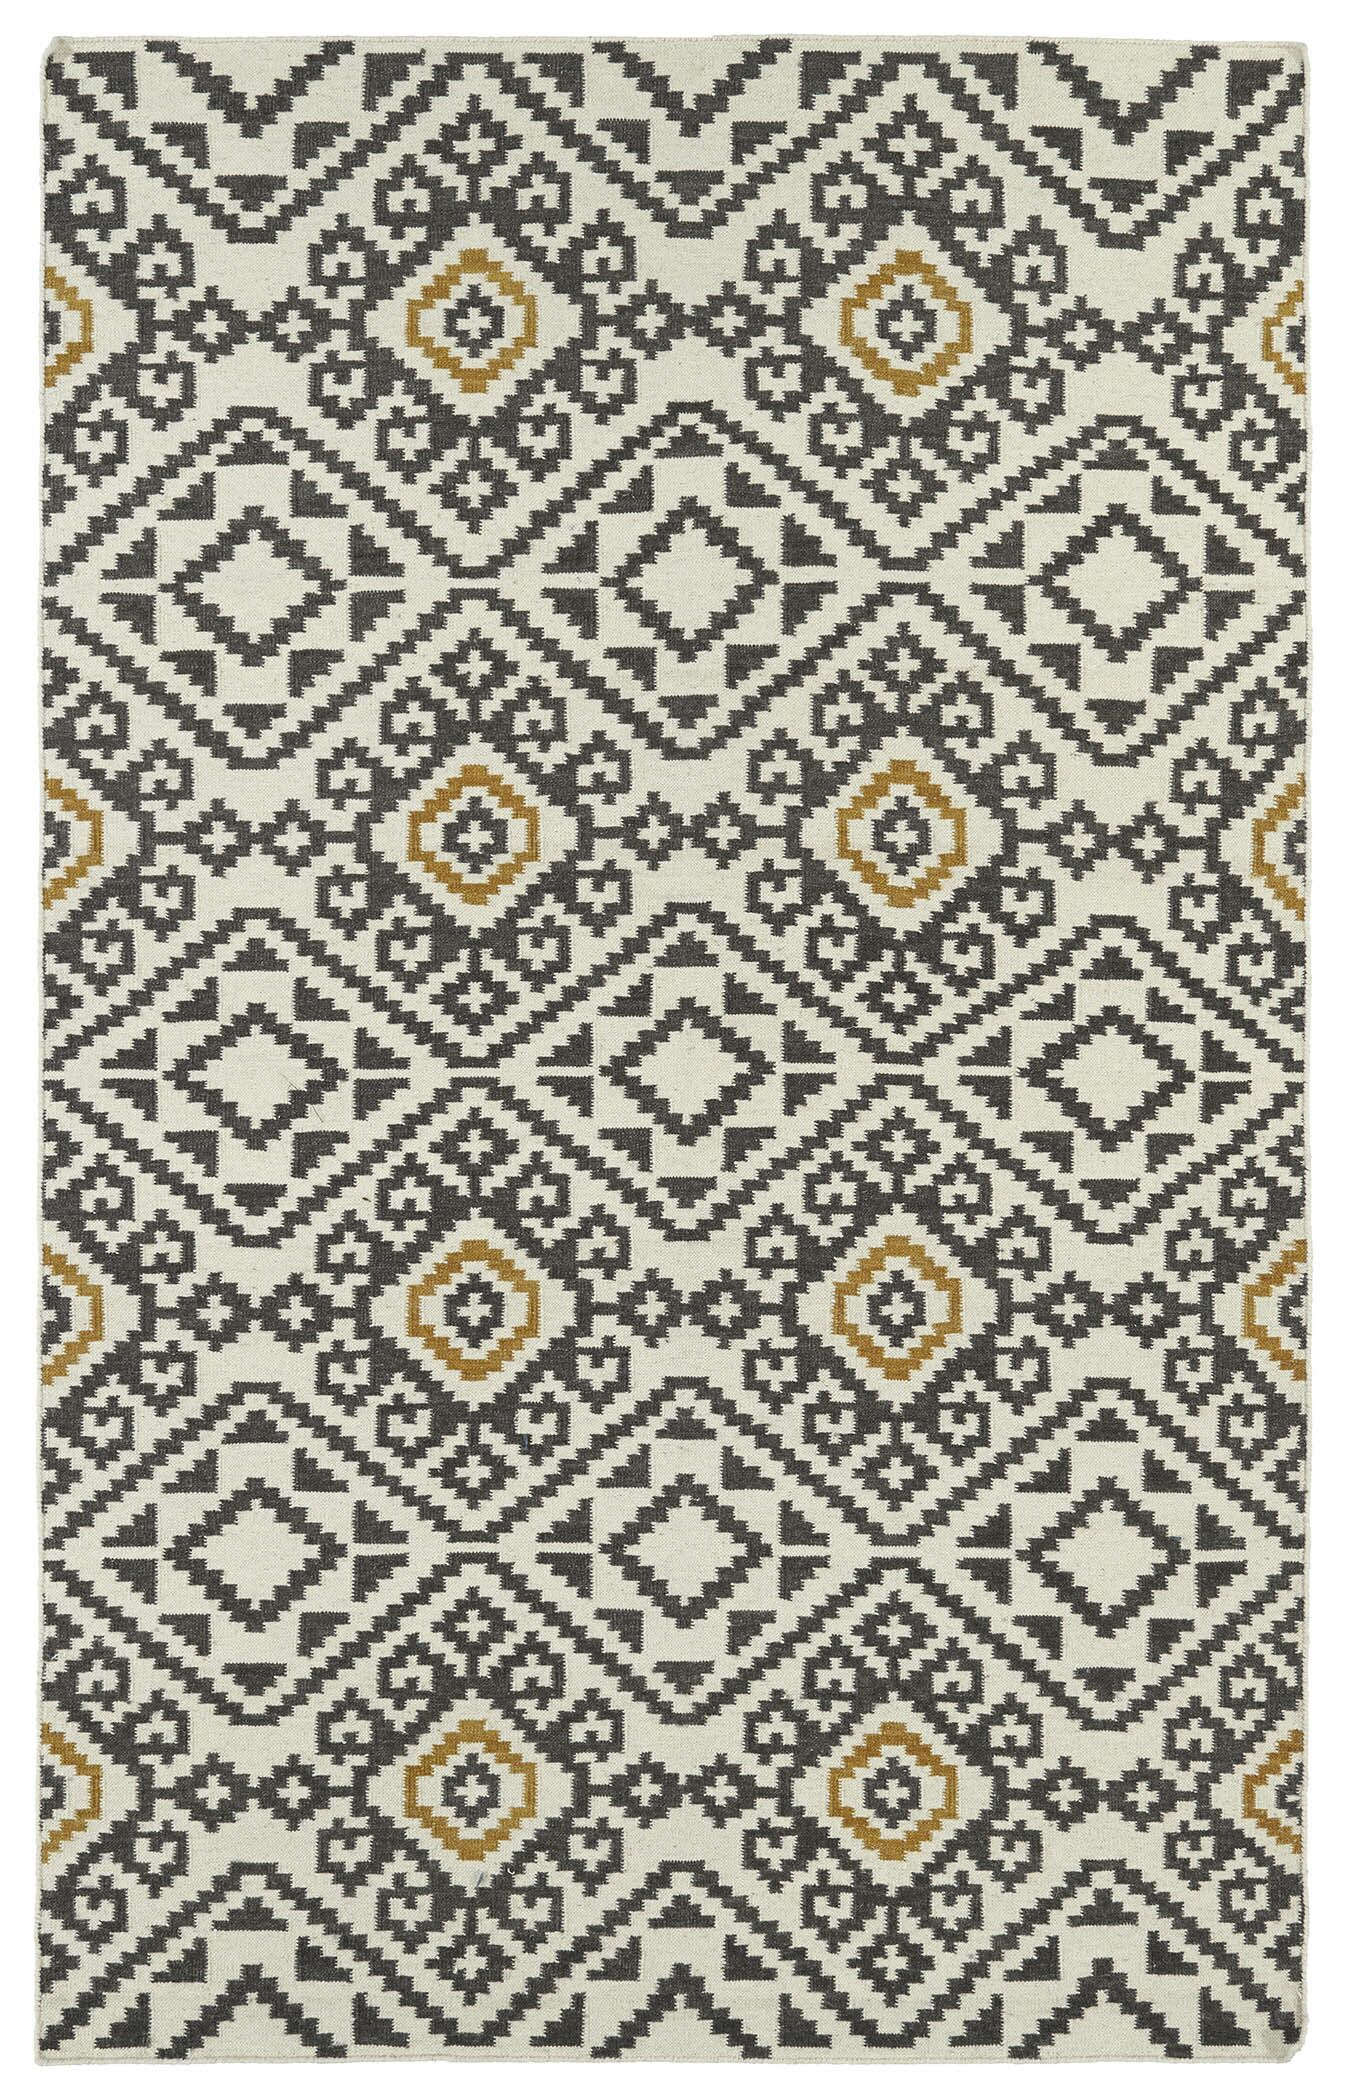 Marble Falls Charcoal Geometric Area Rug Rug Size: Rectangle 3'6